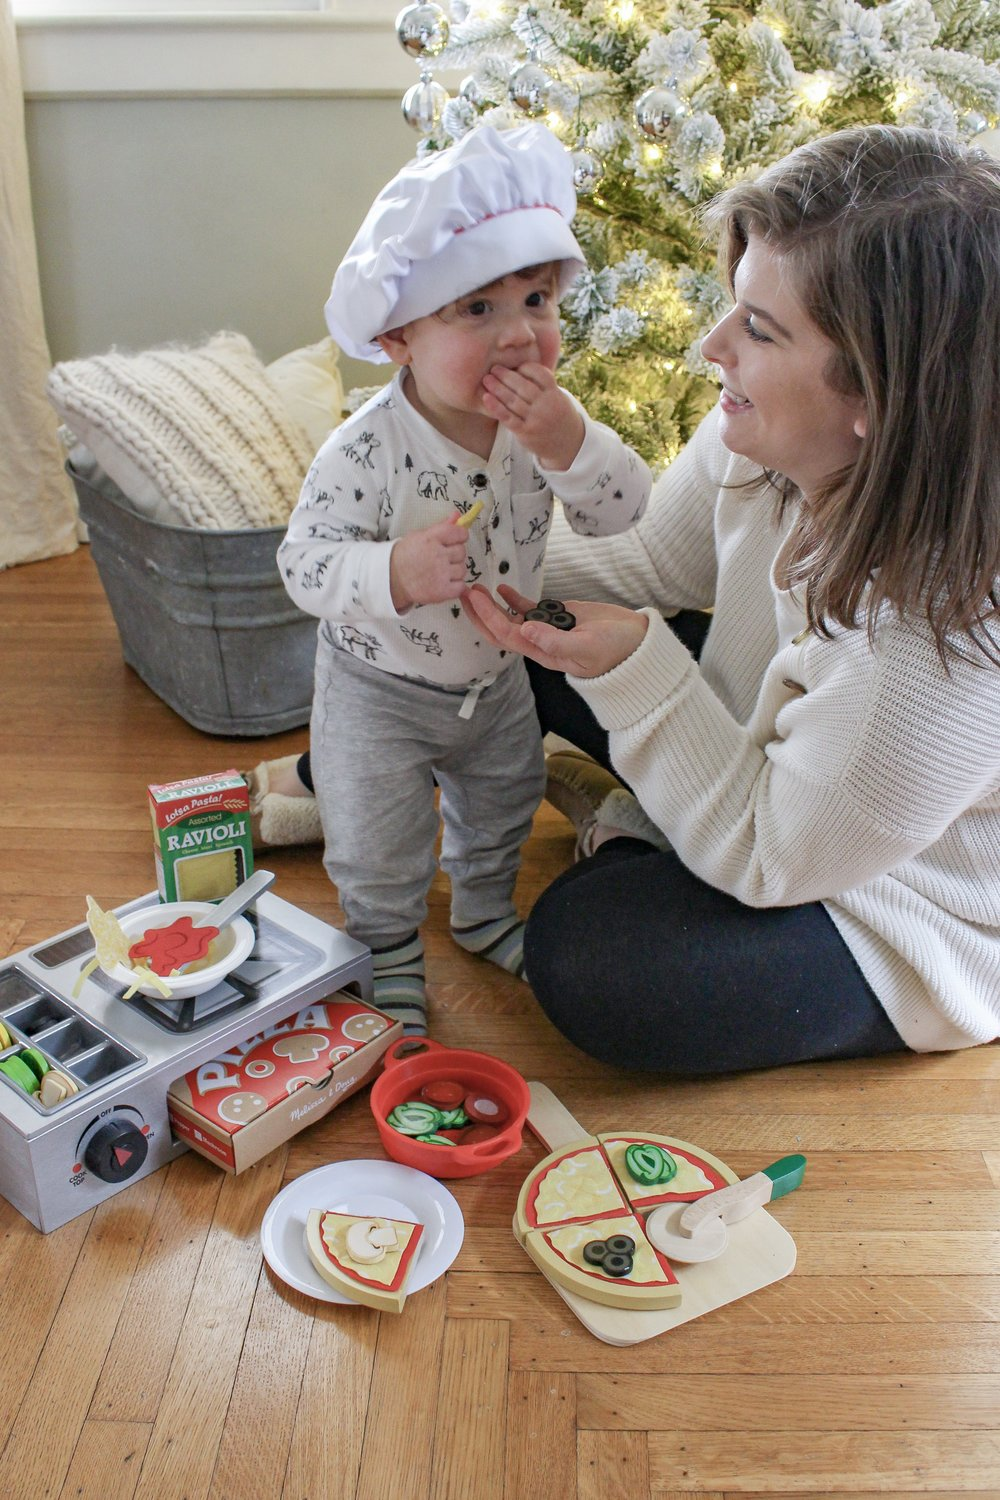 Melissa and Doug Christmas toys